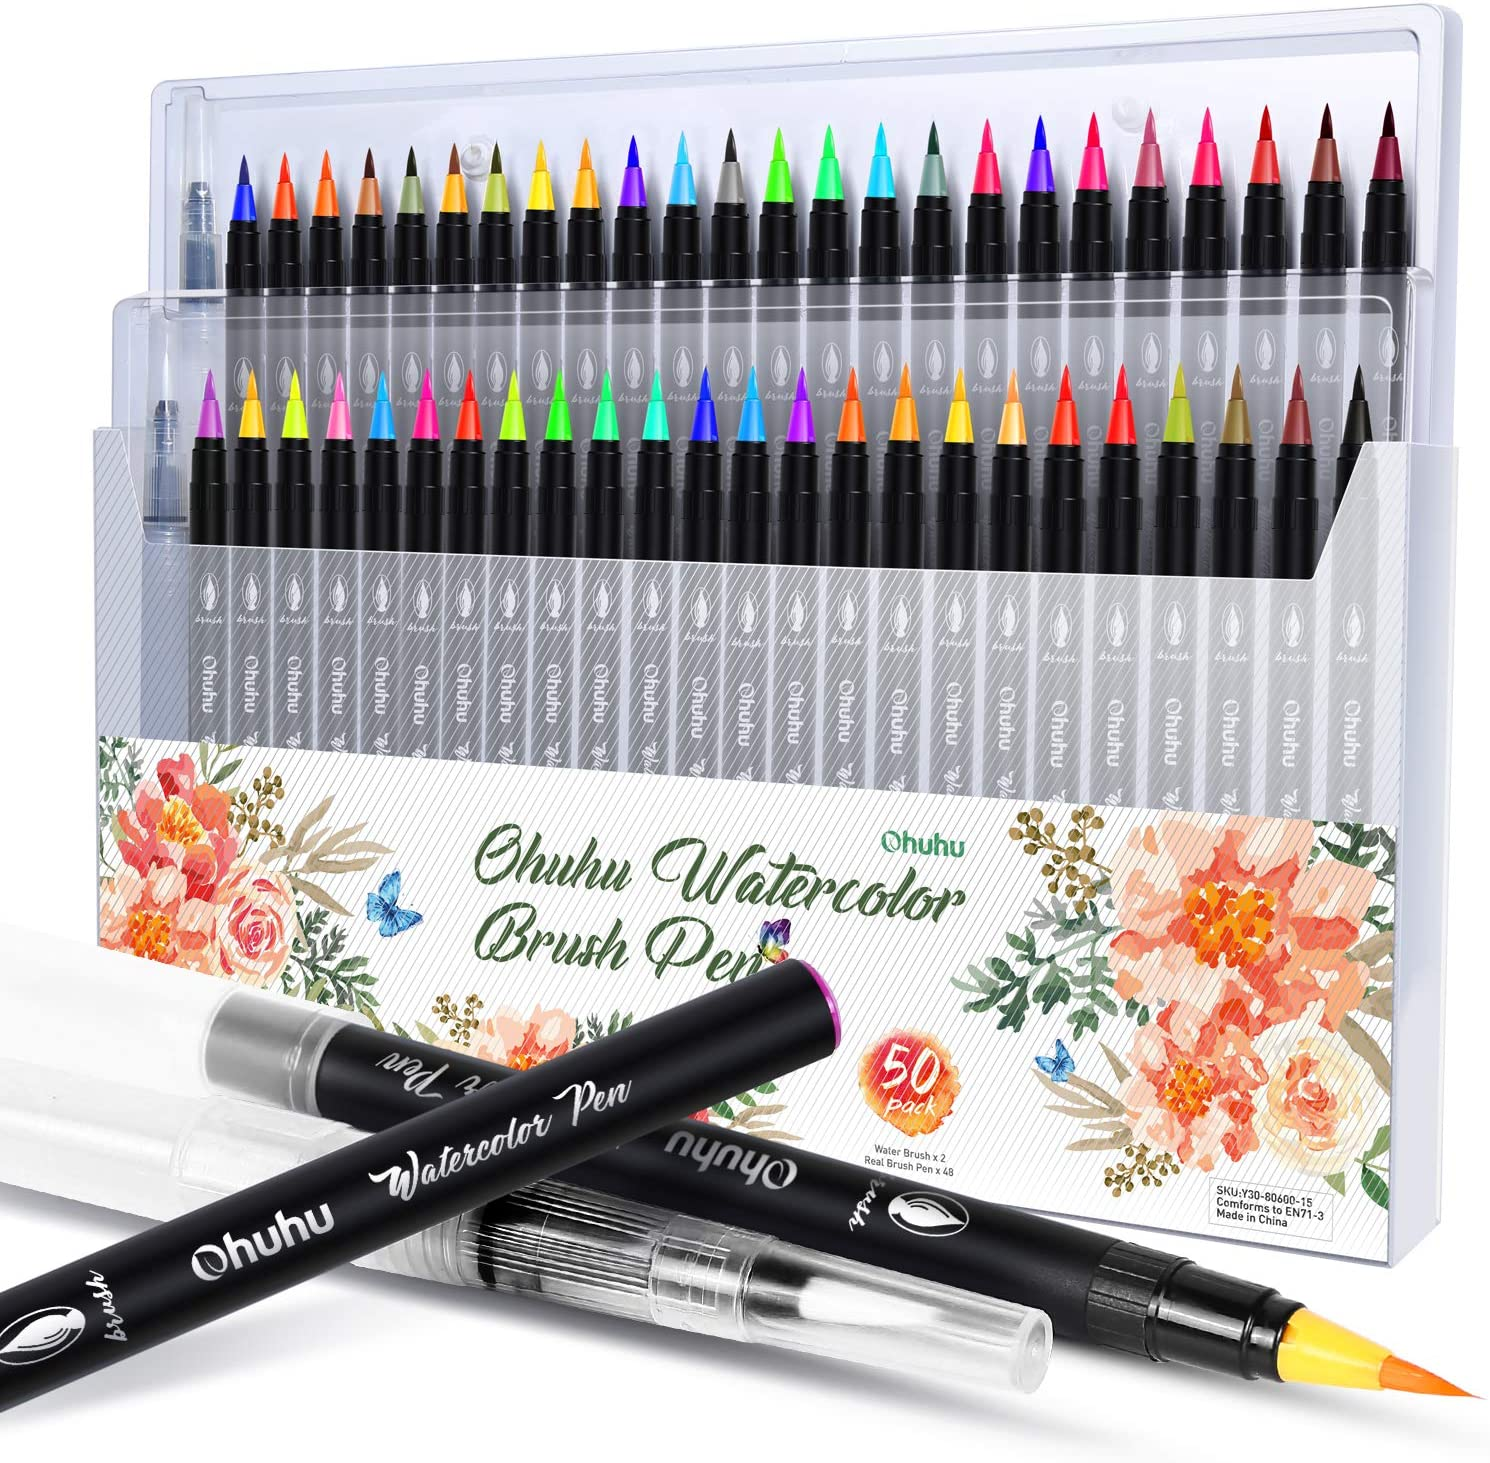 Watercolor Brush Markers Pen, Ohuhu 48 Colors Water Based Drawing Marker Brushes W/A Water Coloring Brush, Water Soluble for Adult Coloring Books Calligraphy Christmas Gifts